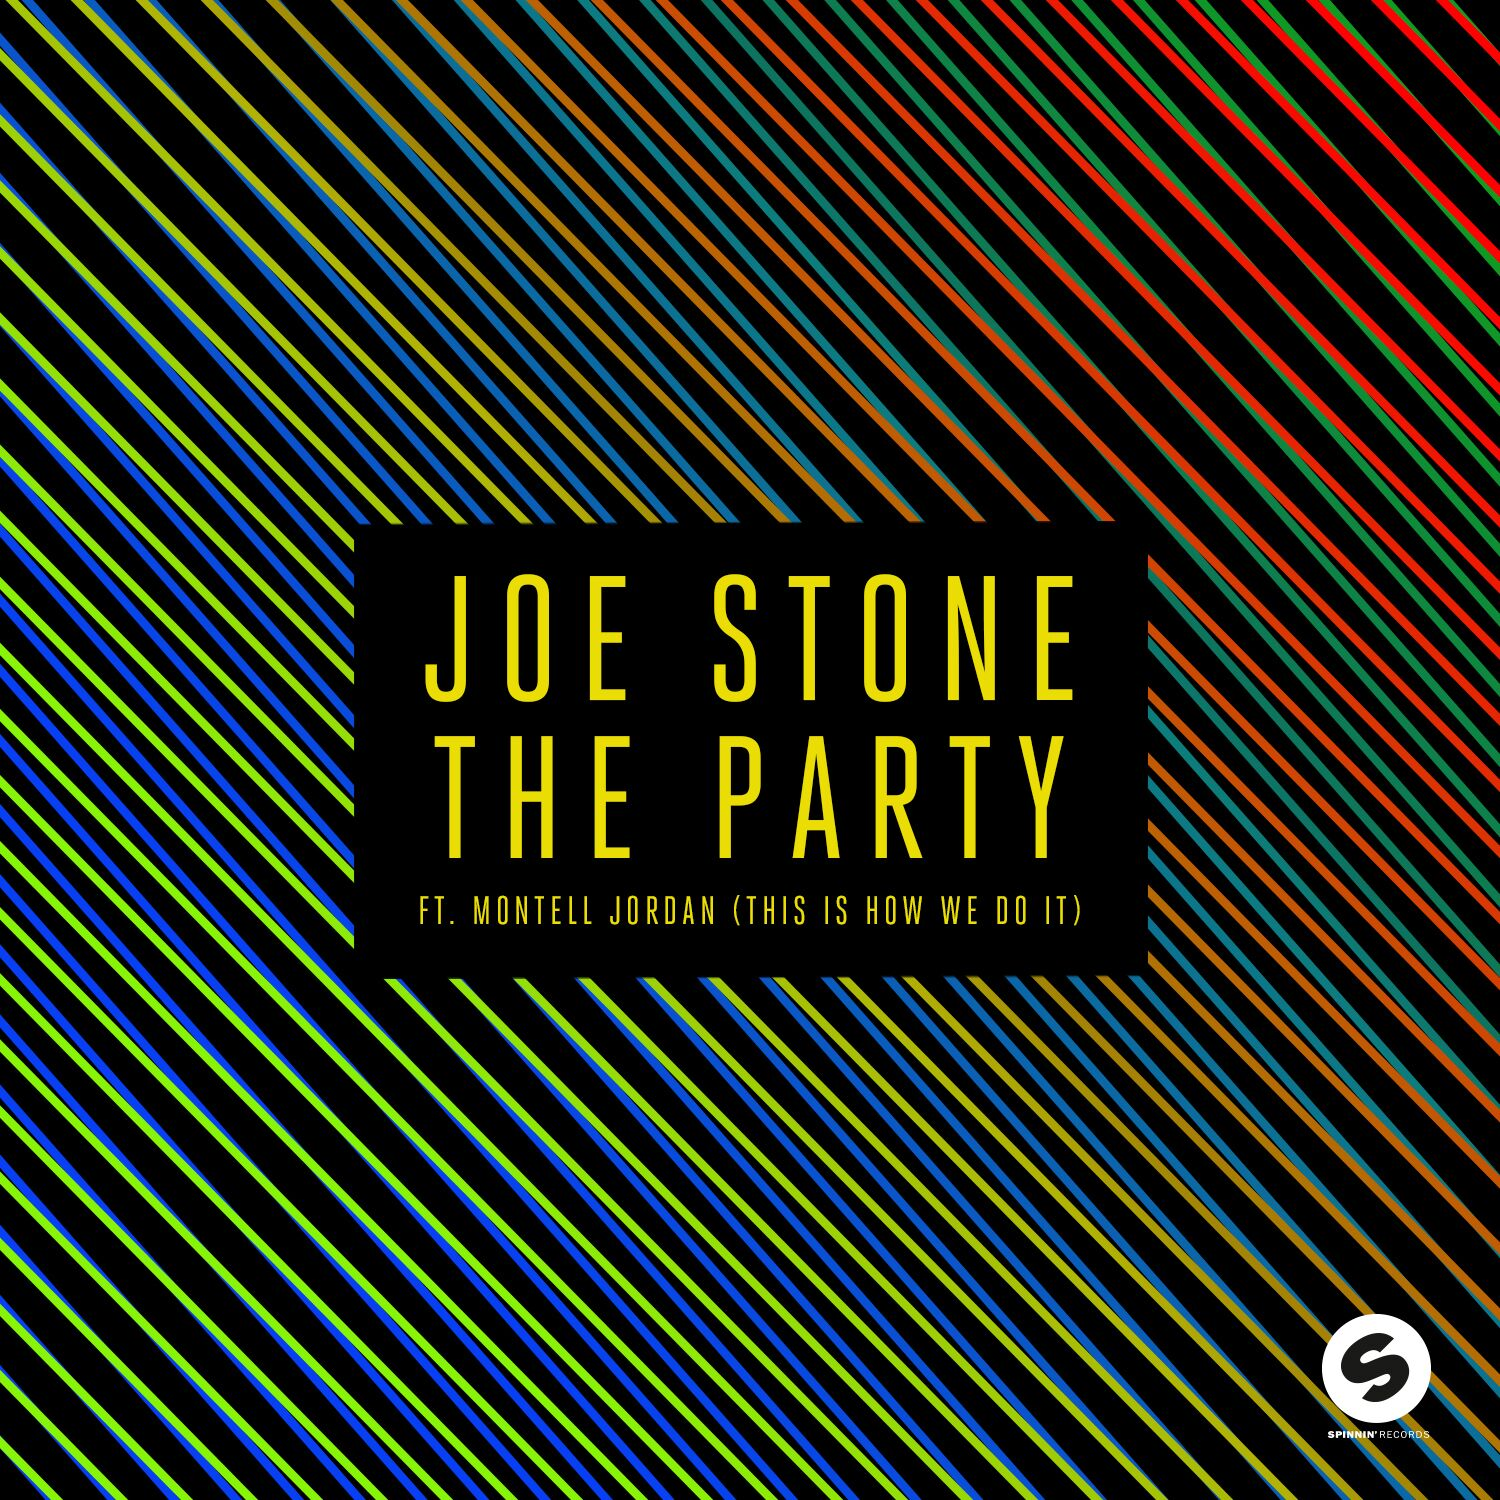 TRACK DER WOCHE: Joe Stone feat. Montell Jordan – The Party